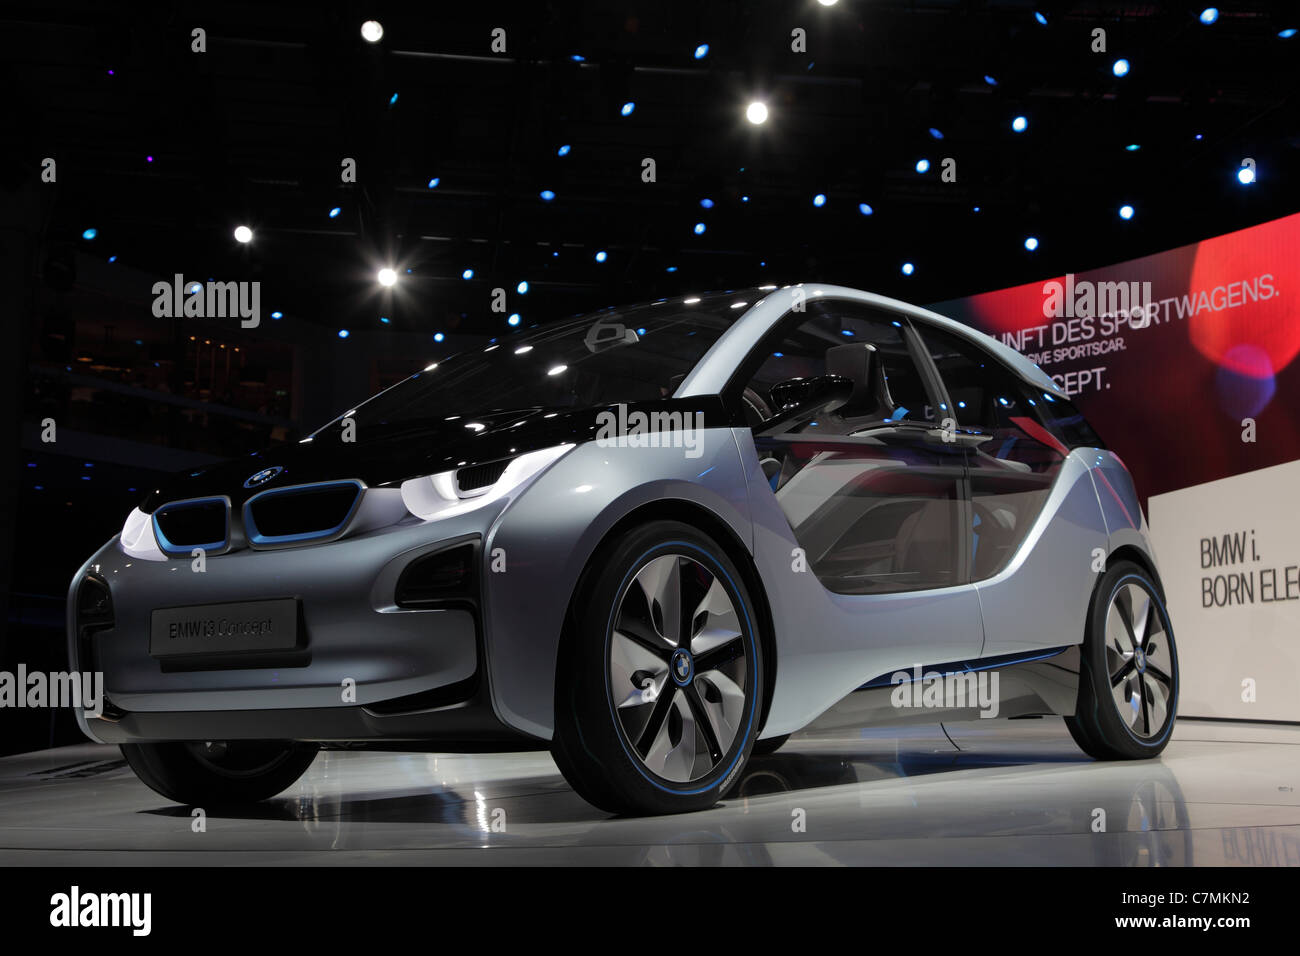 BMW electric concept car i3 at the 64th IAA (Internationale Automobil Ausstellung) - Stock Image